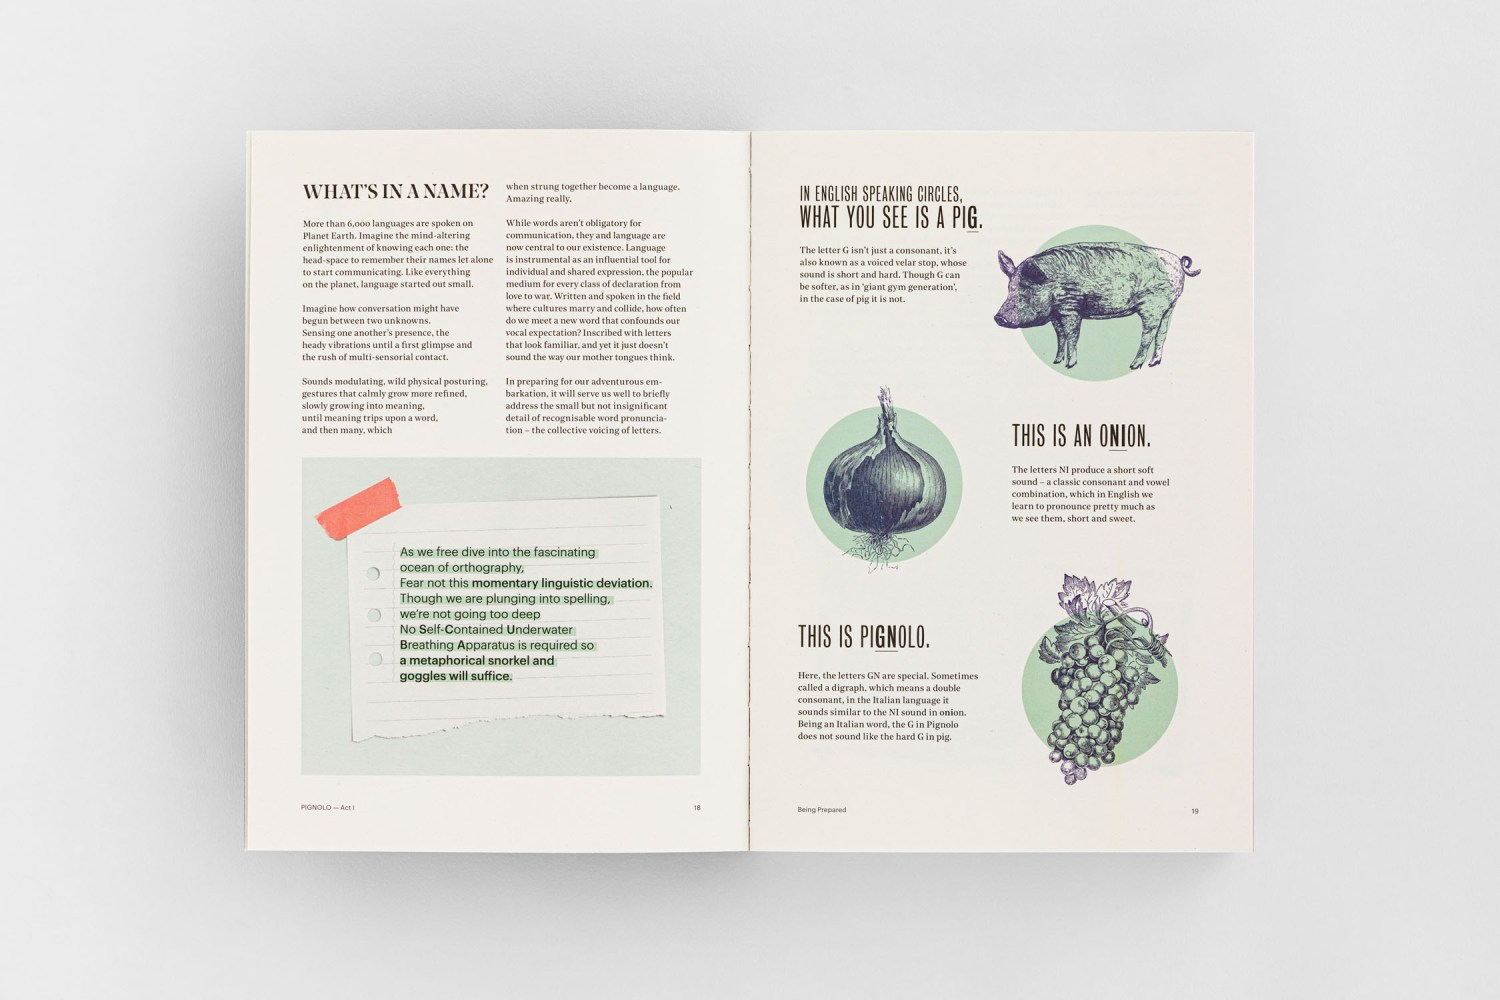 Pignolo Cultivating the Invisible, wine art book, design and artwork by Carin Marzaro